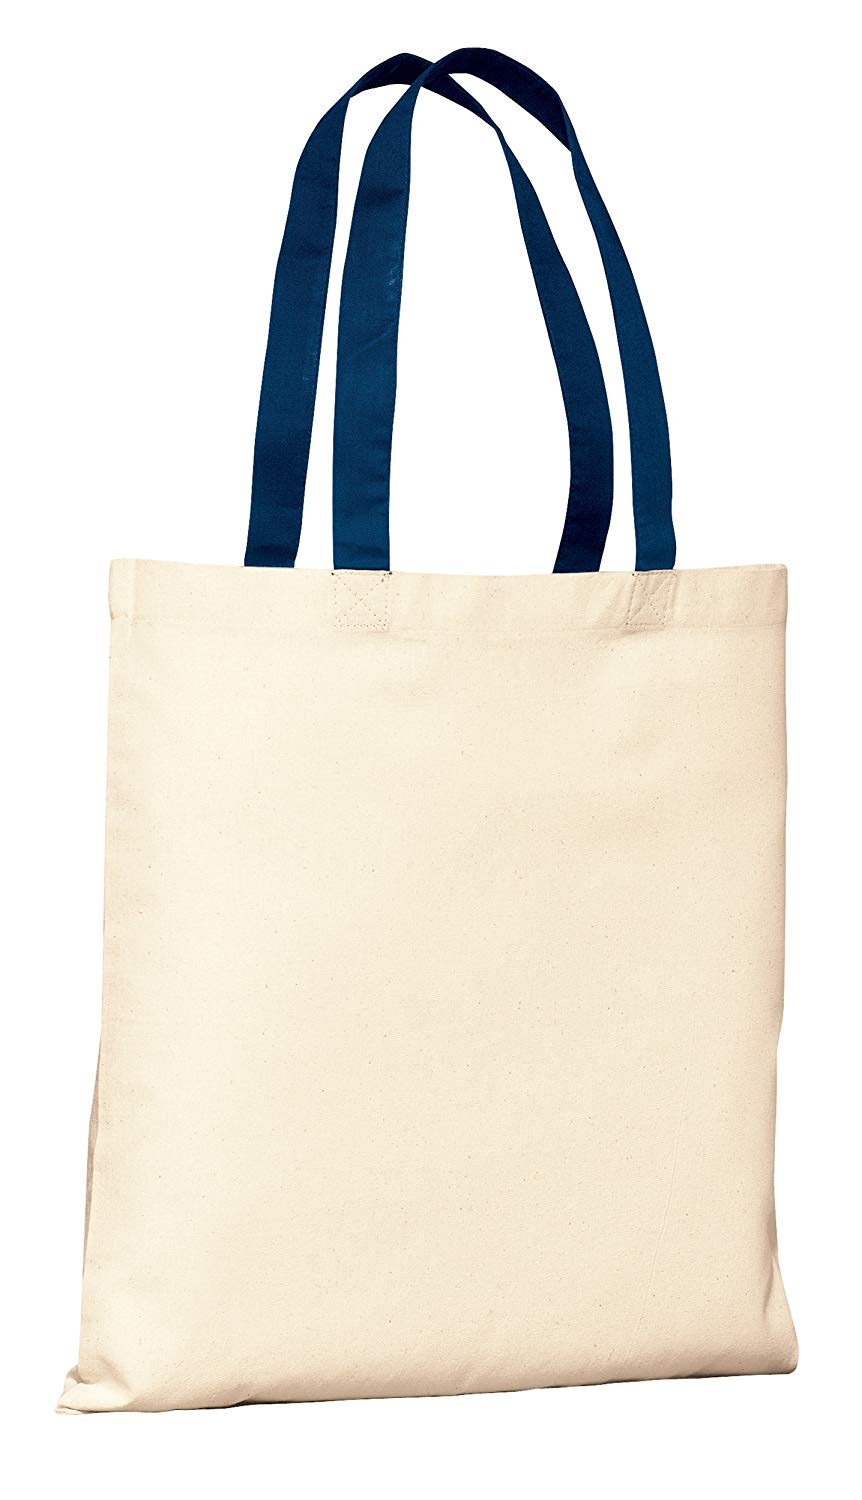 Budget Friendly Reusable 100% Cotton Tote Bag with Color Handles | Cotton Canvas Tote Bags in Bulk | Reusable and Eco Friendly Cotton Tote Bags Wholesale by BagzDepot (12, Navy)